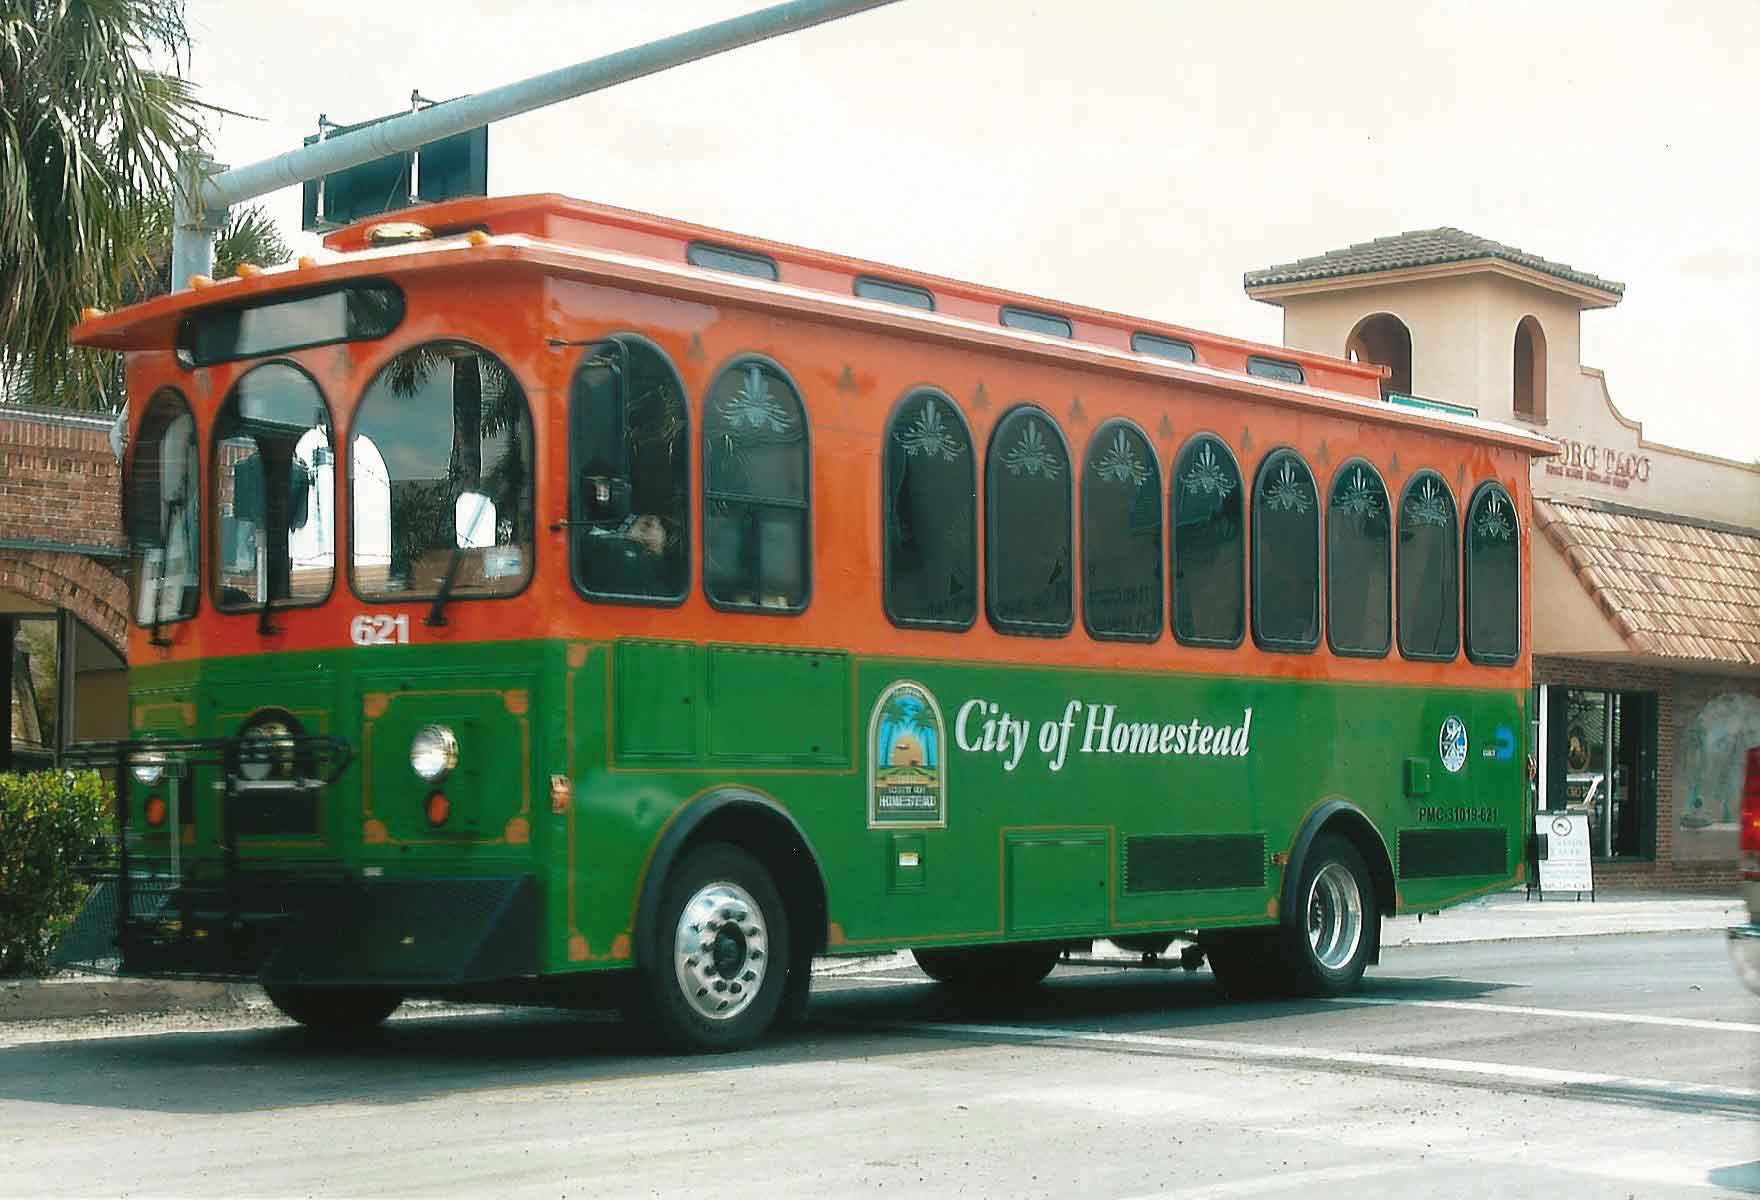 Homestead is rolling full-speed ahead to develop a transit center